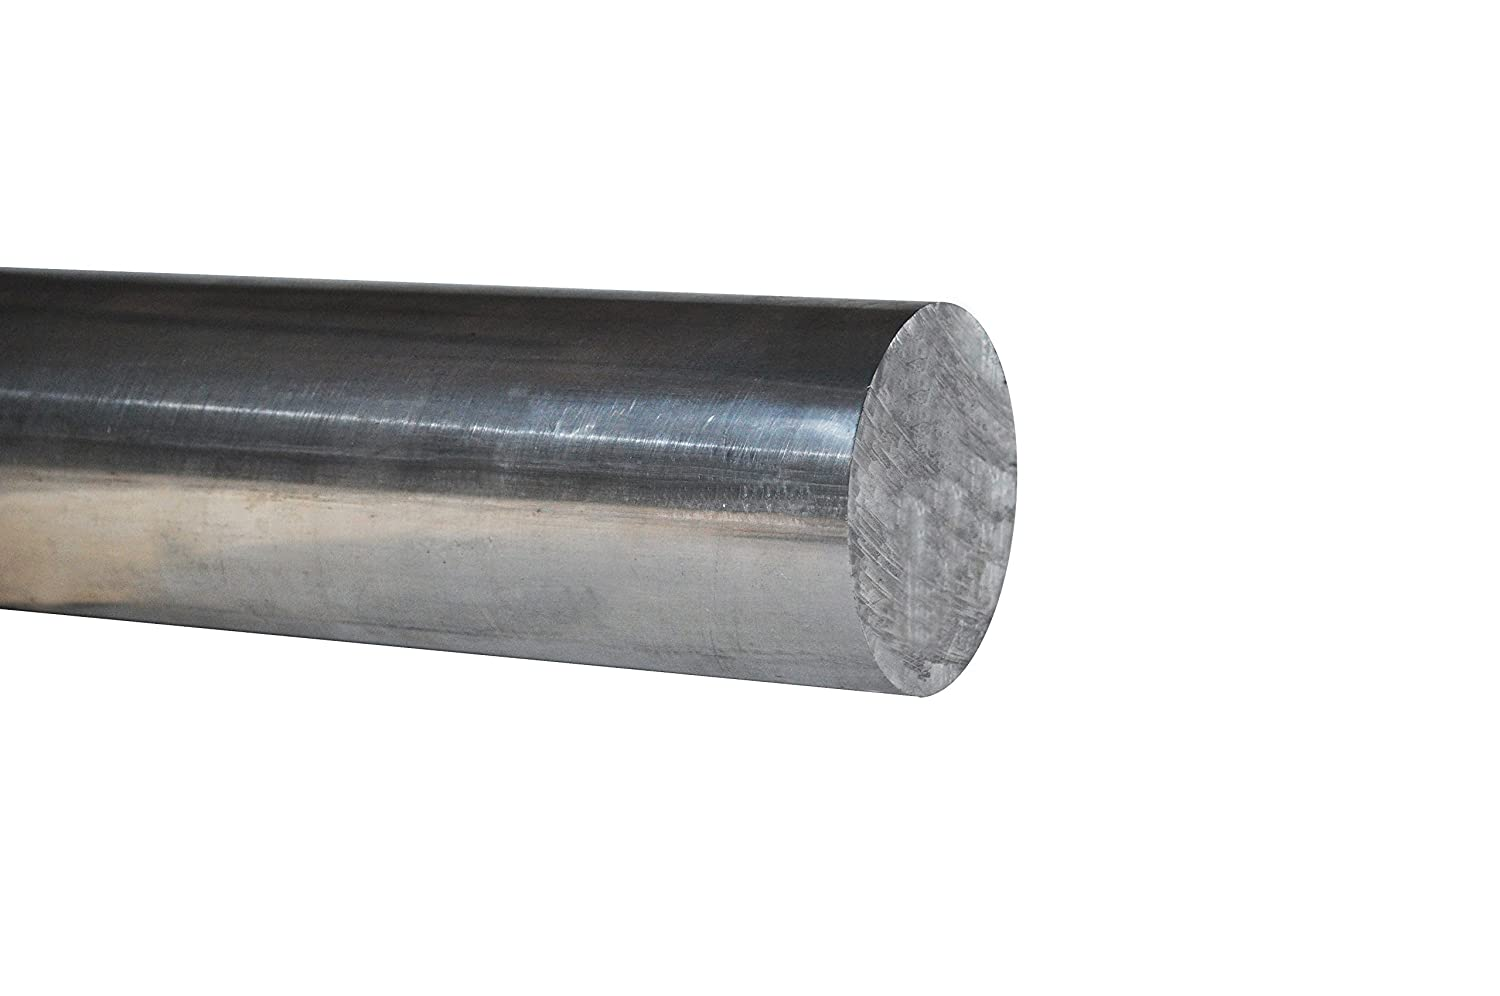 Round Bar Aluminium 7075T6/ /Ø mm 12/ Wiredrawing Length = 0/ Meters